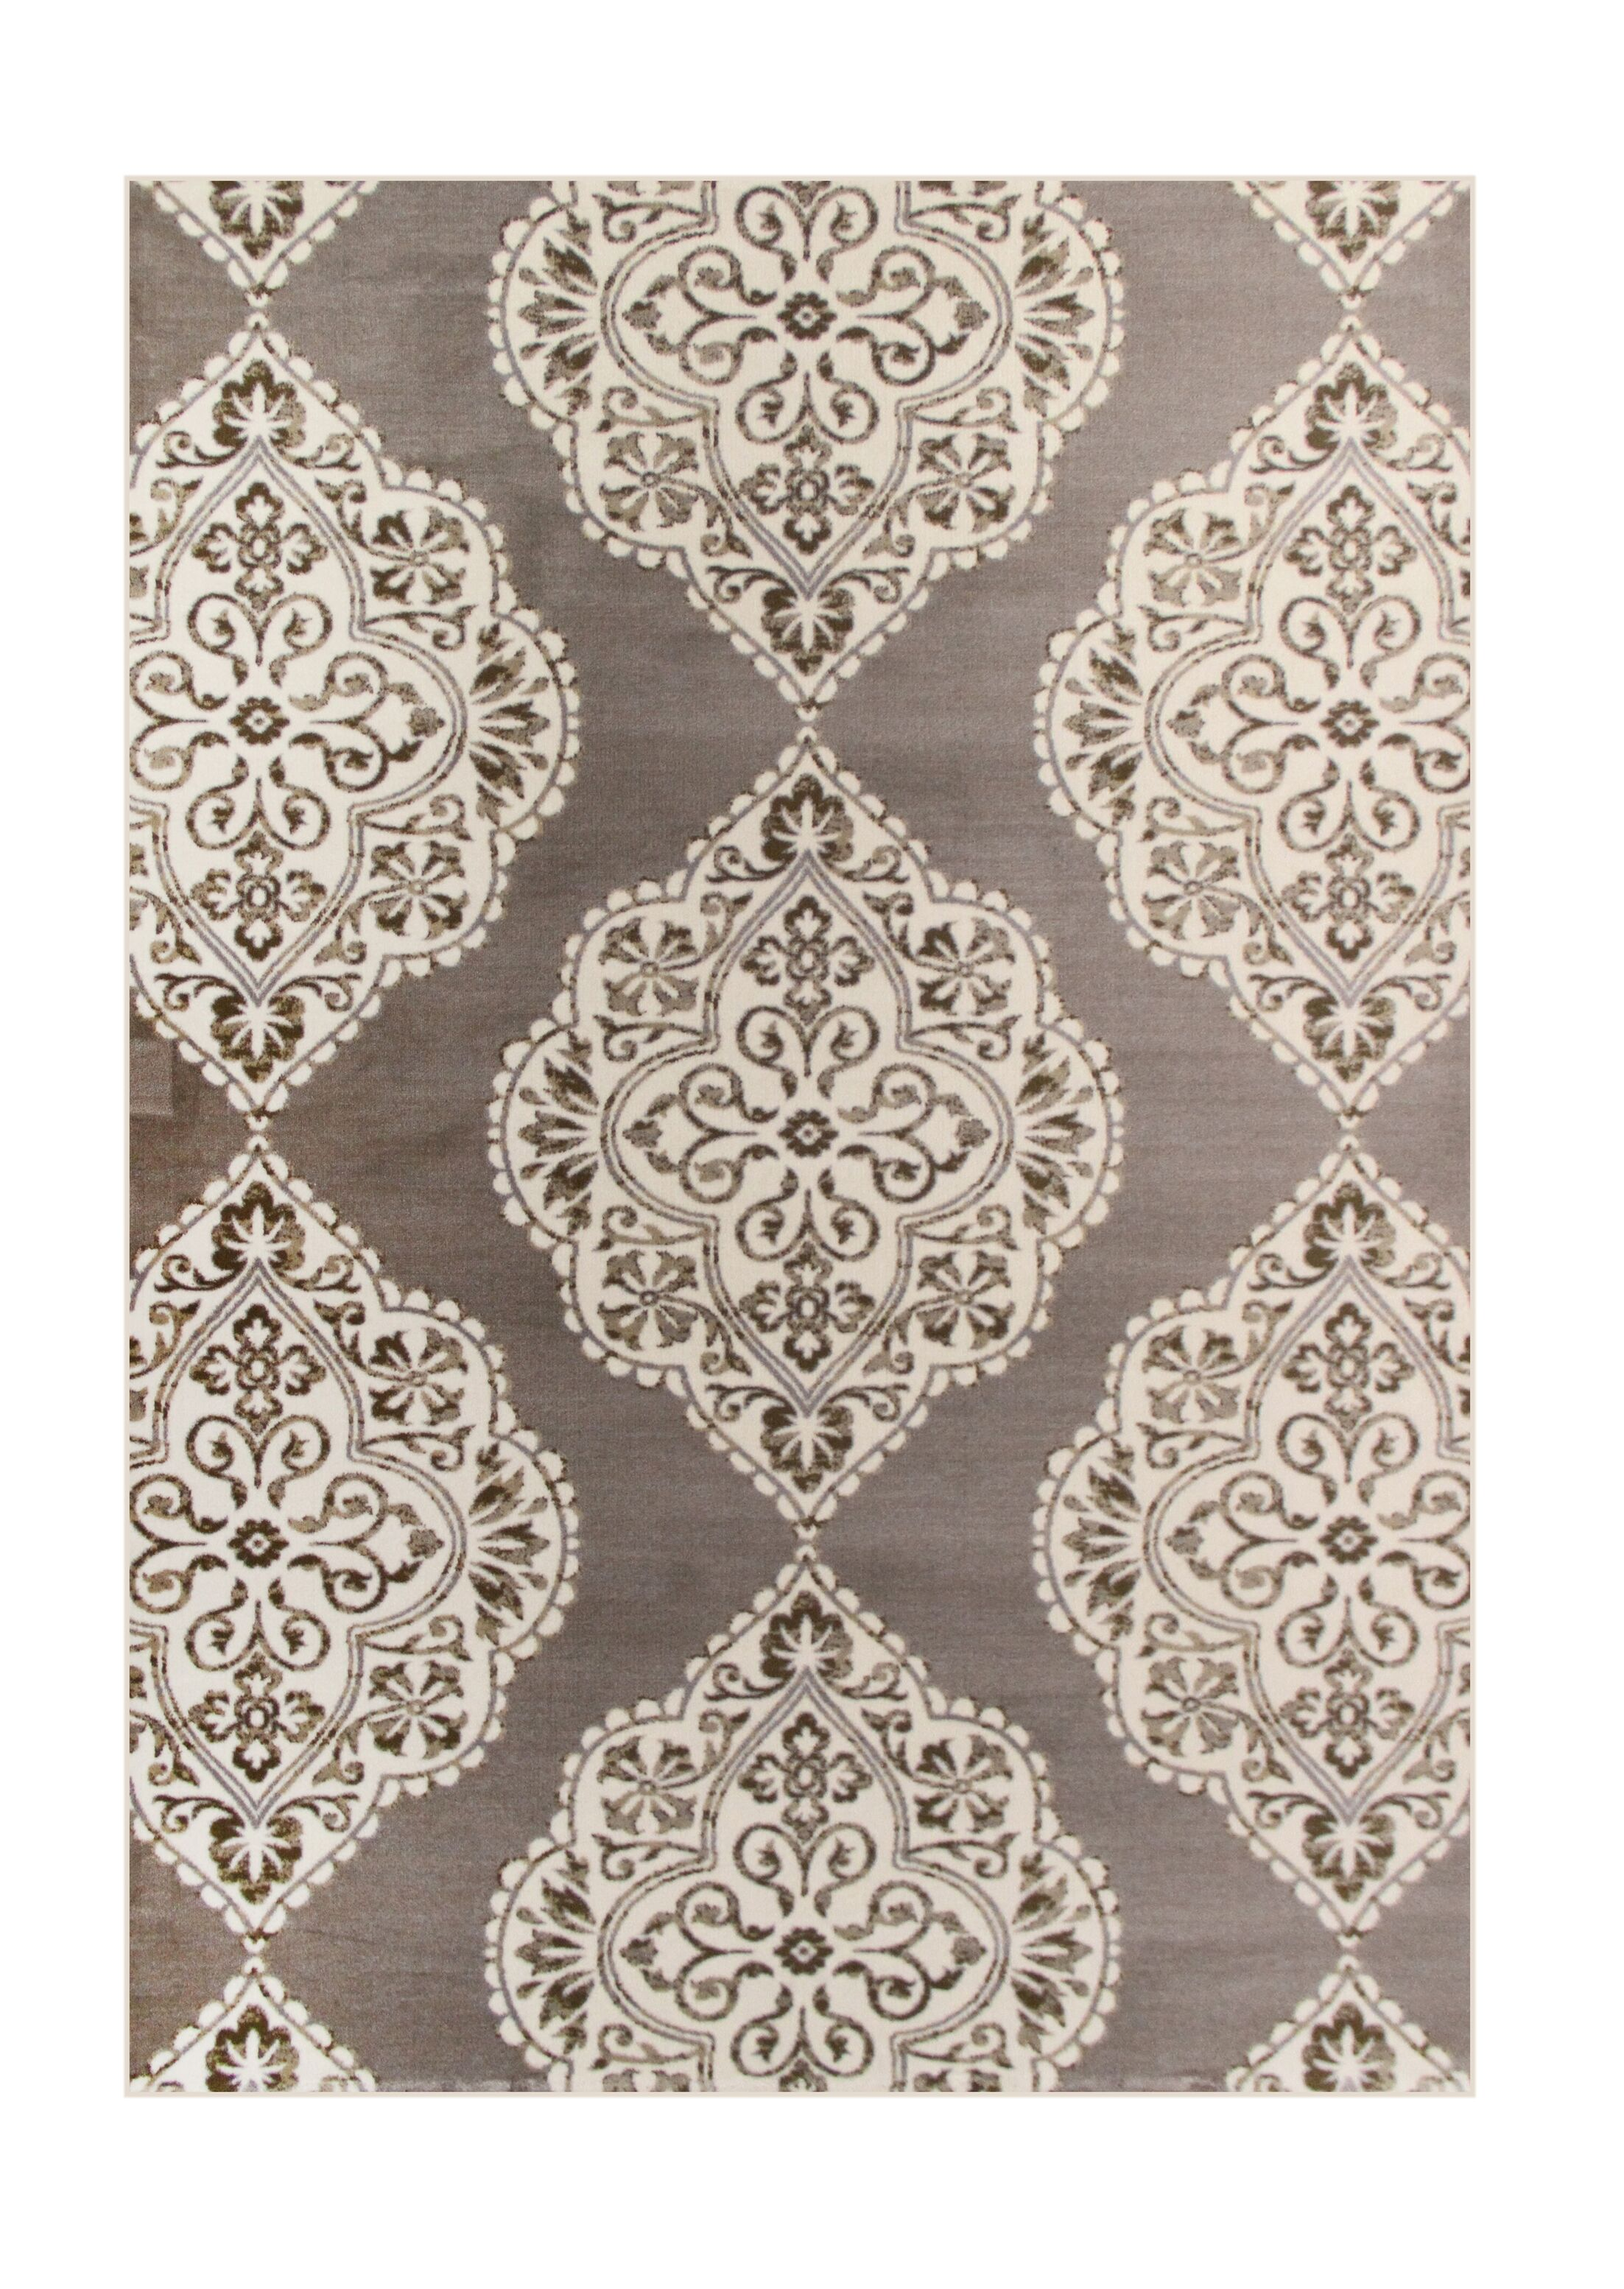 Jack Brown / White Area Rug Rug Size: 6'7 x 9'2